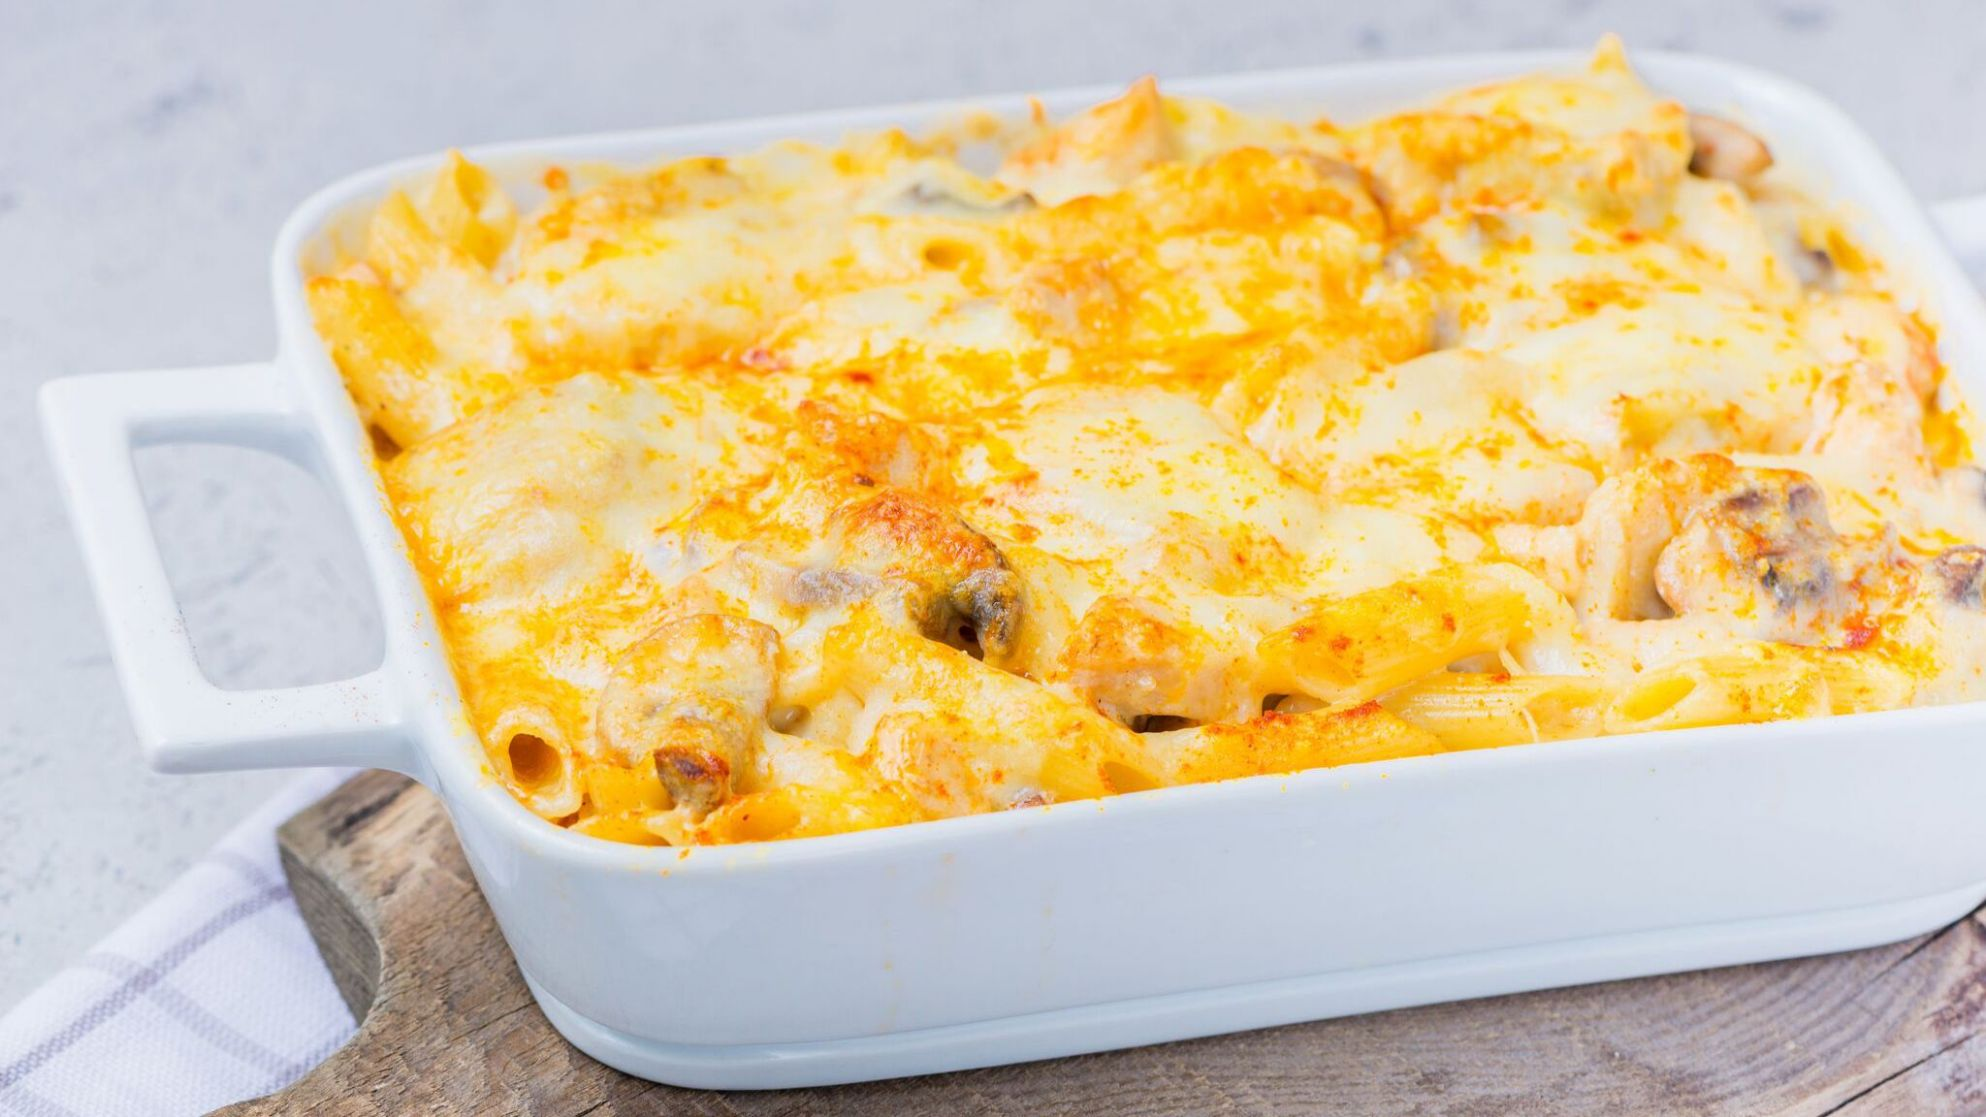 Chicken, Cheese, and Penne Pasta Bake - Recipes Chicken Pasta Bake